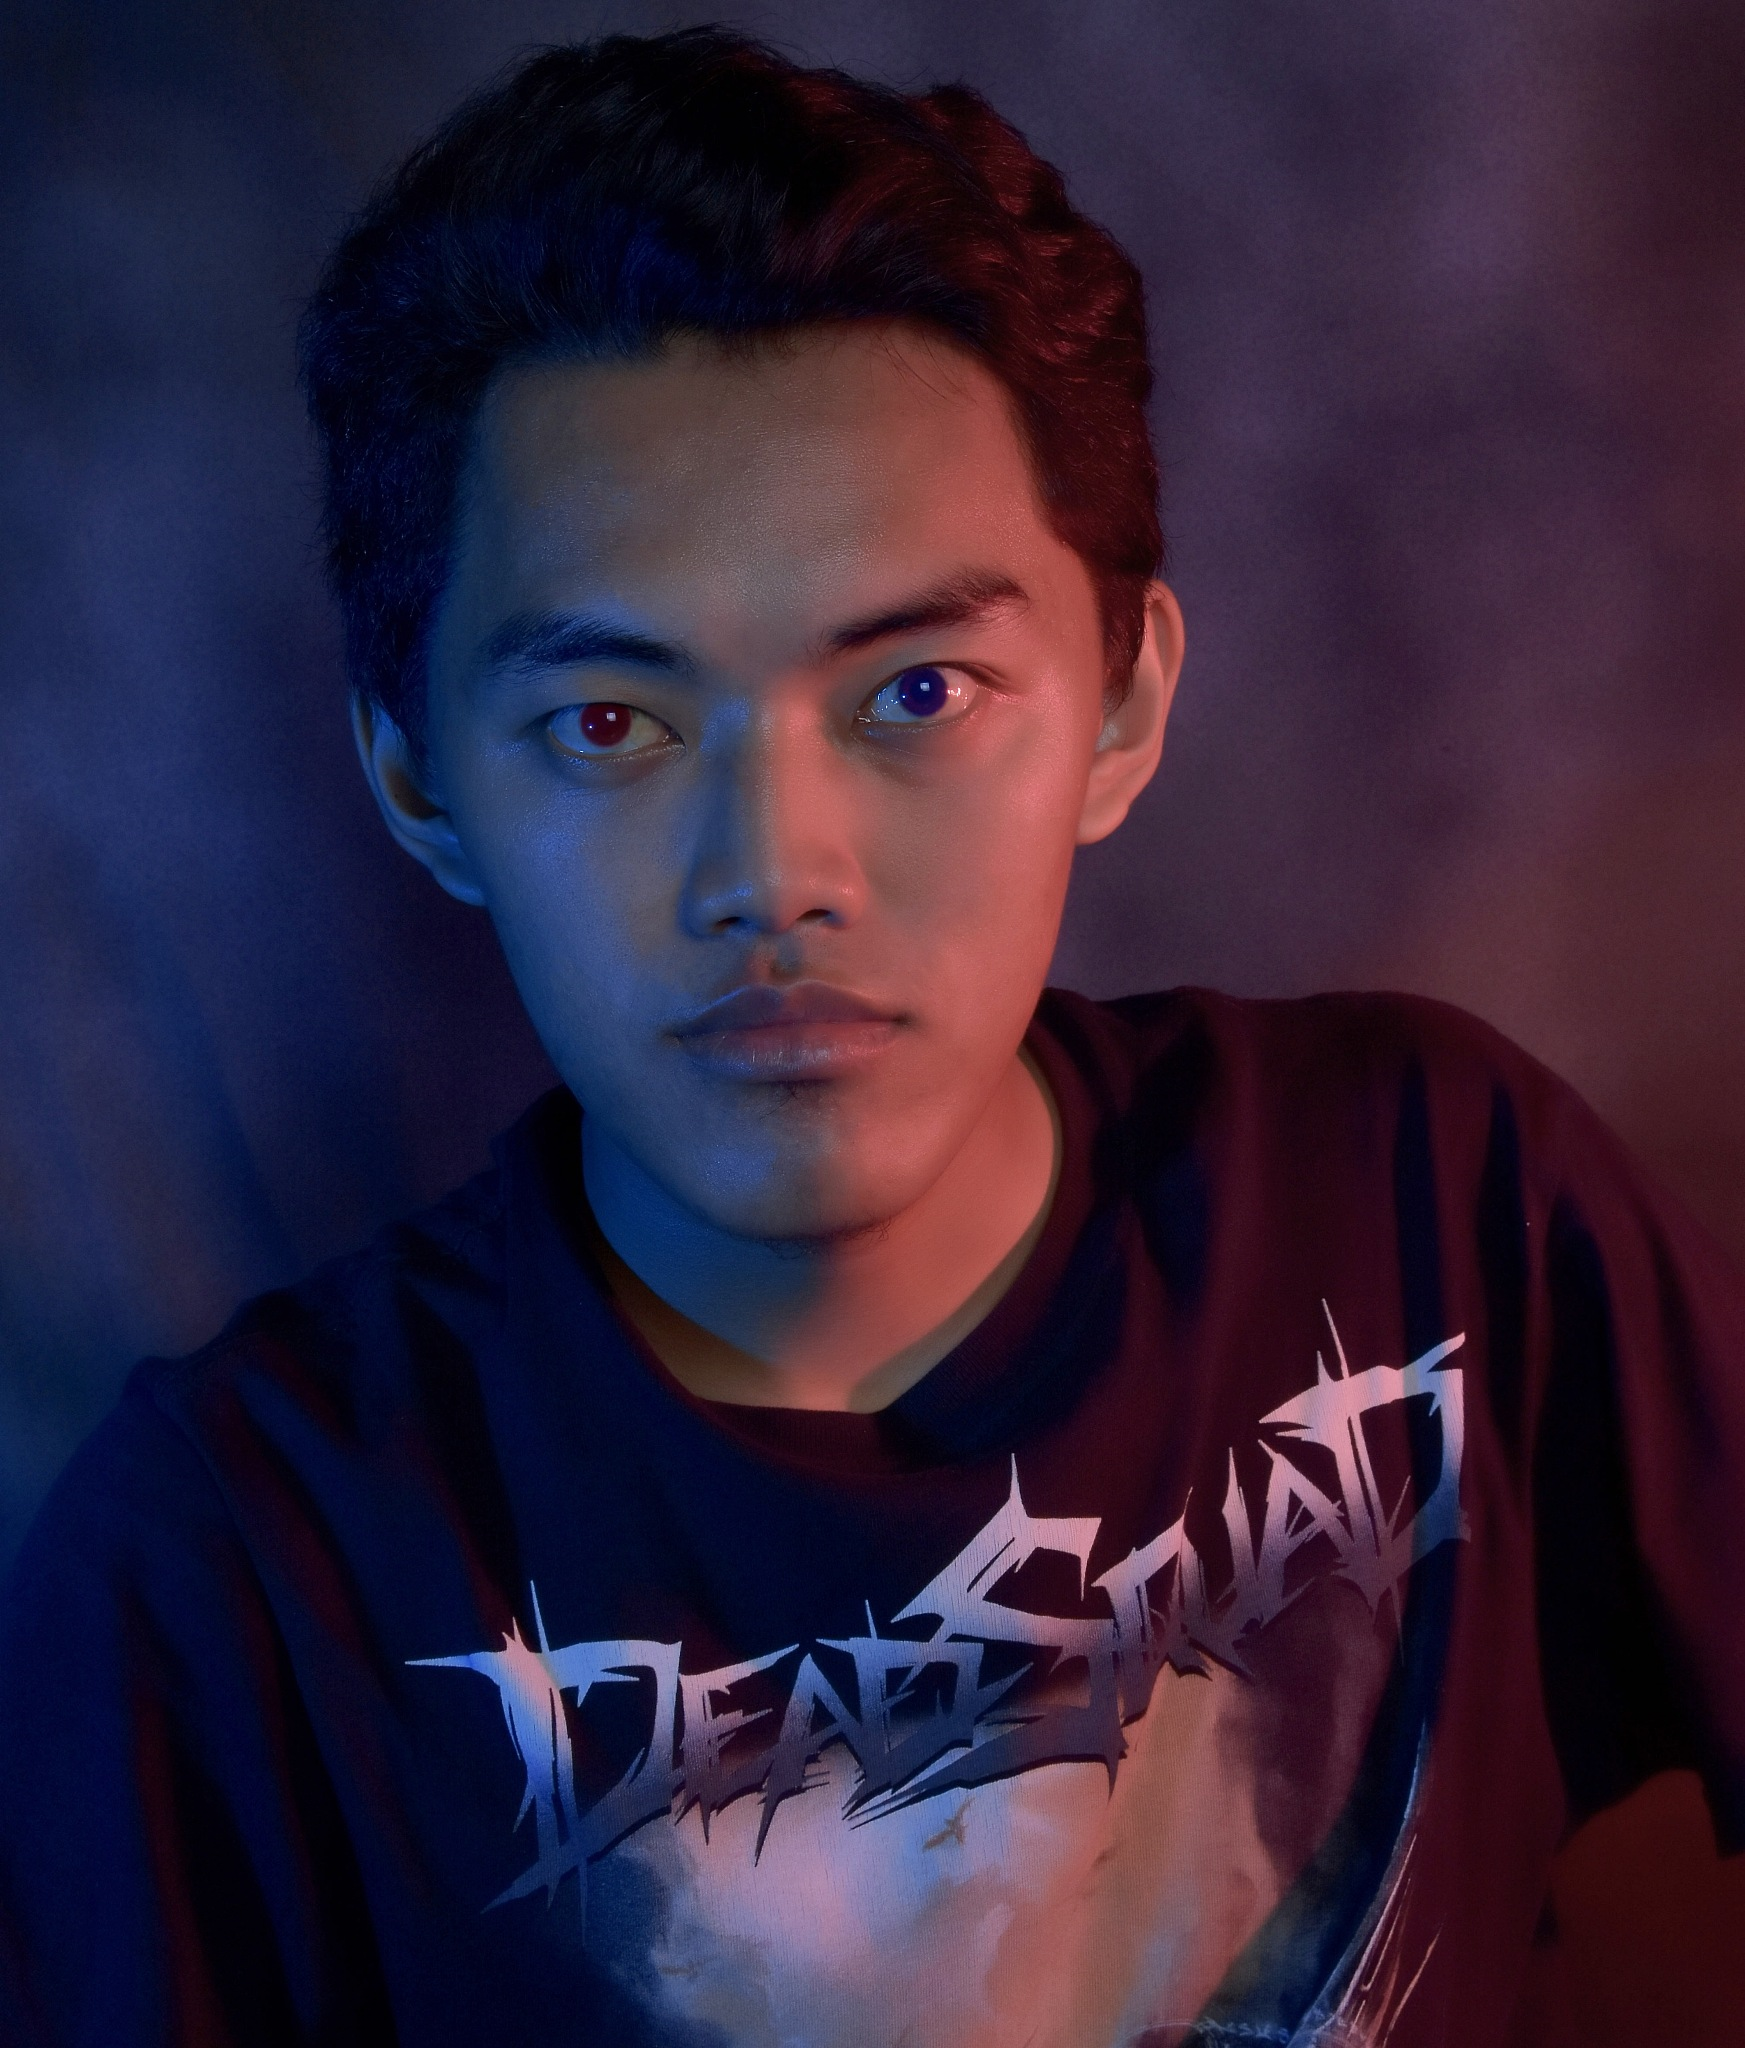 I am Angry now by Agus Anjay